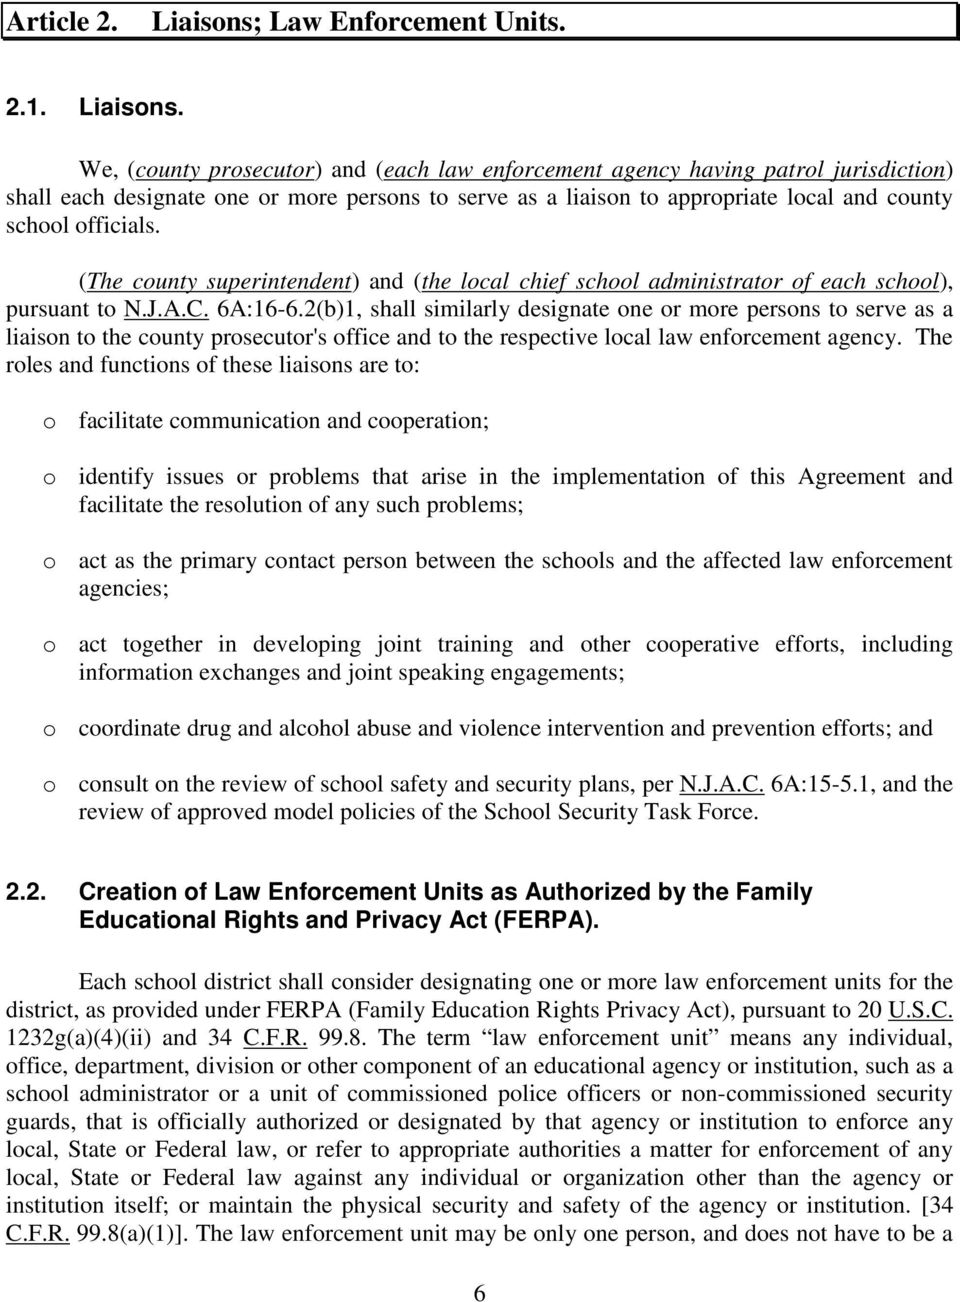 We, (county prosecutor) and (each law enforcement agency having patrol jurisdiction) shall each designate one or more persons to serve as a liaison to appropriate local and county school officials.